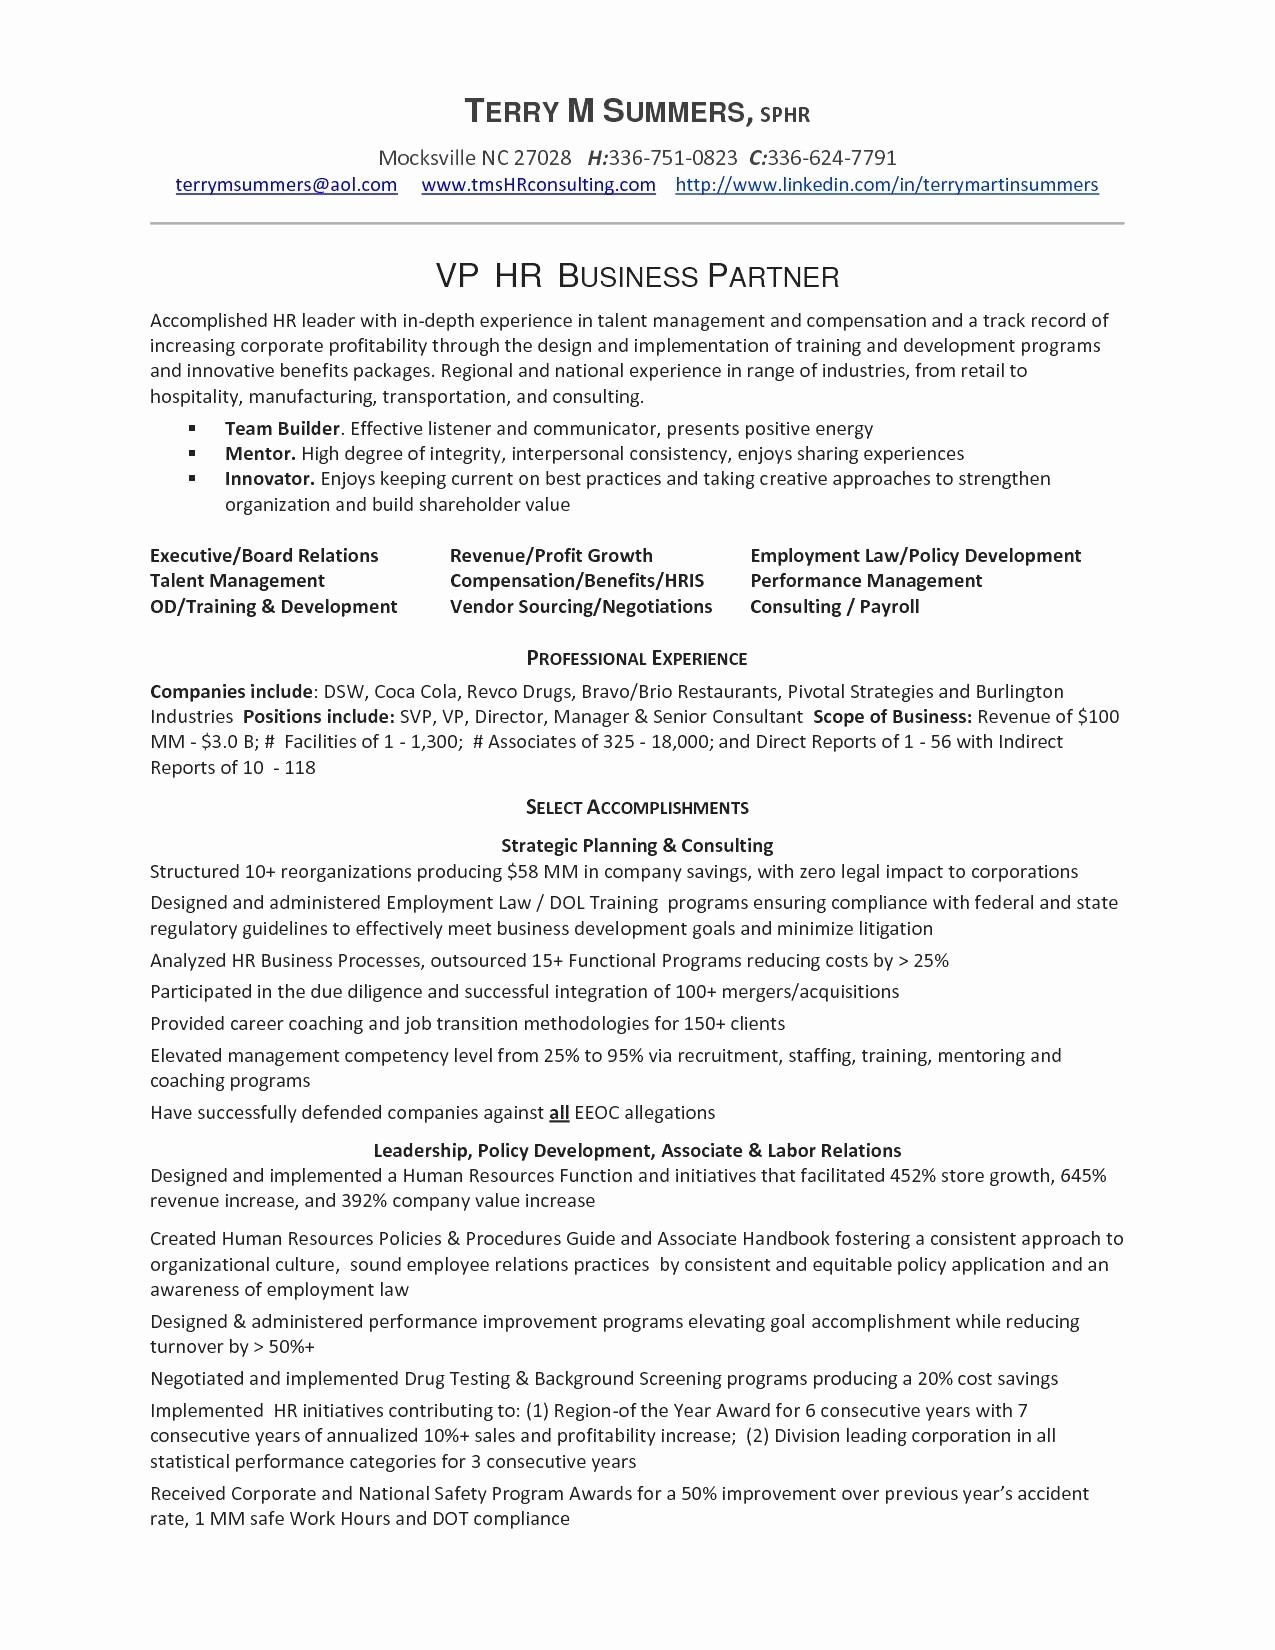 Product Manager Resume Template - Sample Resume for Inventory Supervisor New Warehouse Management